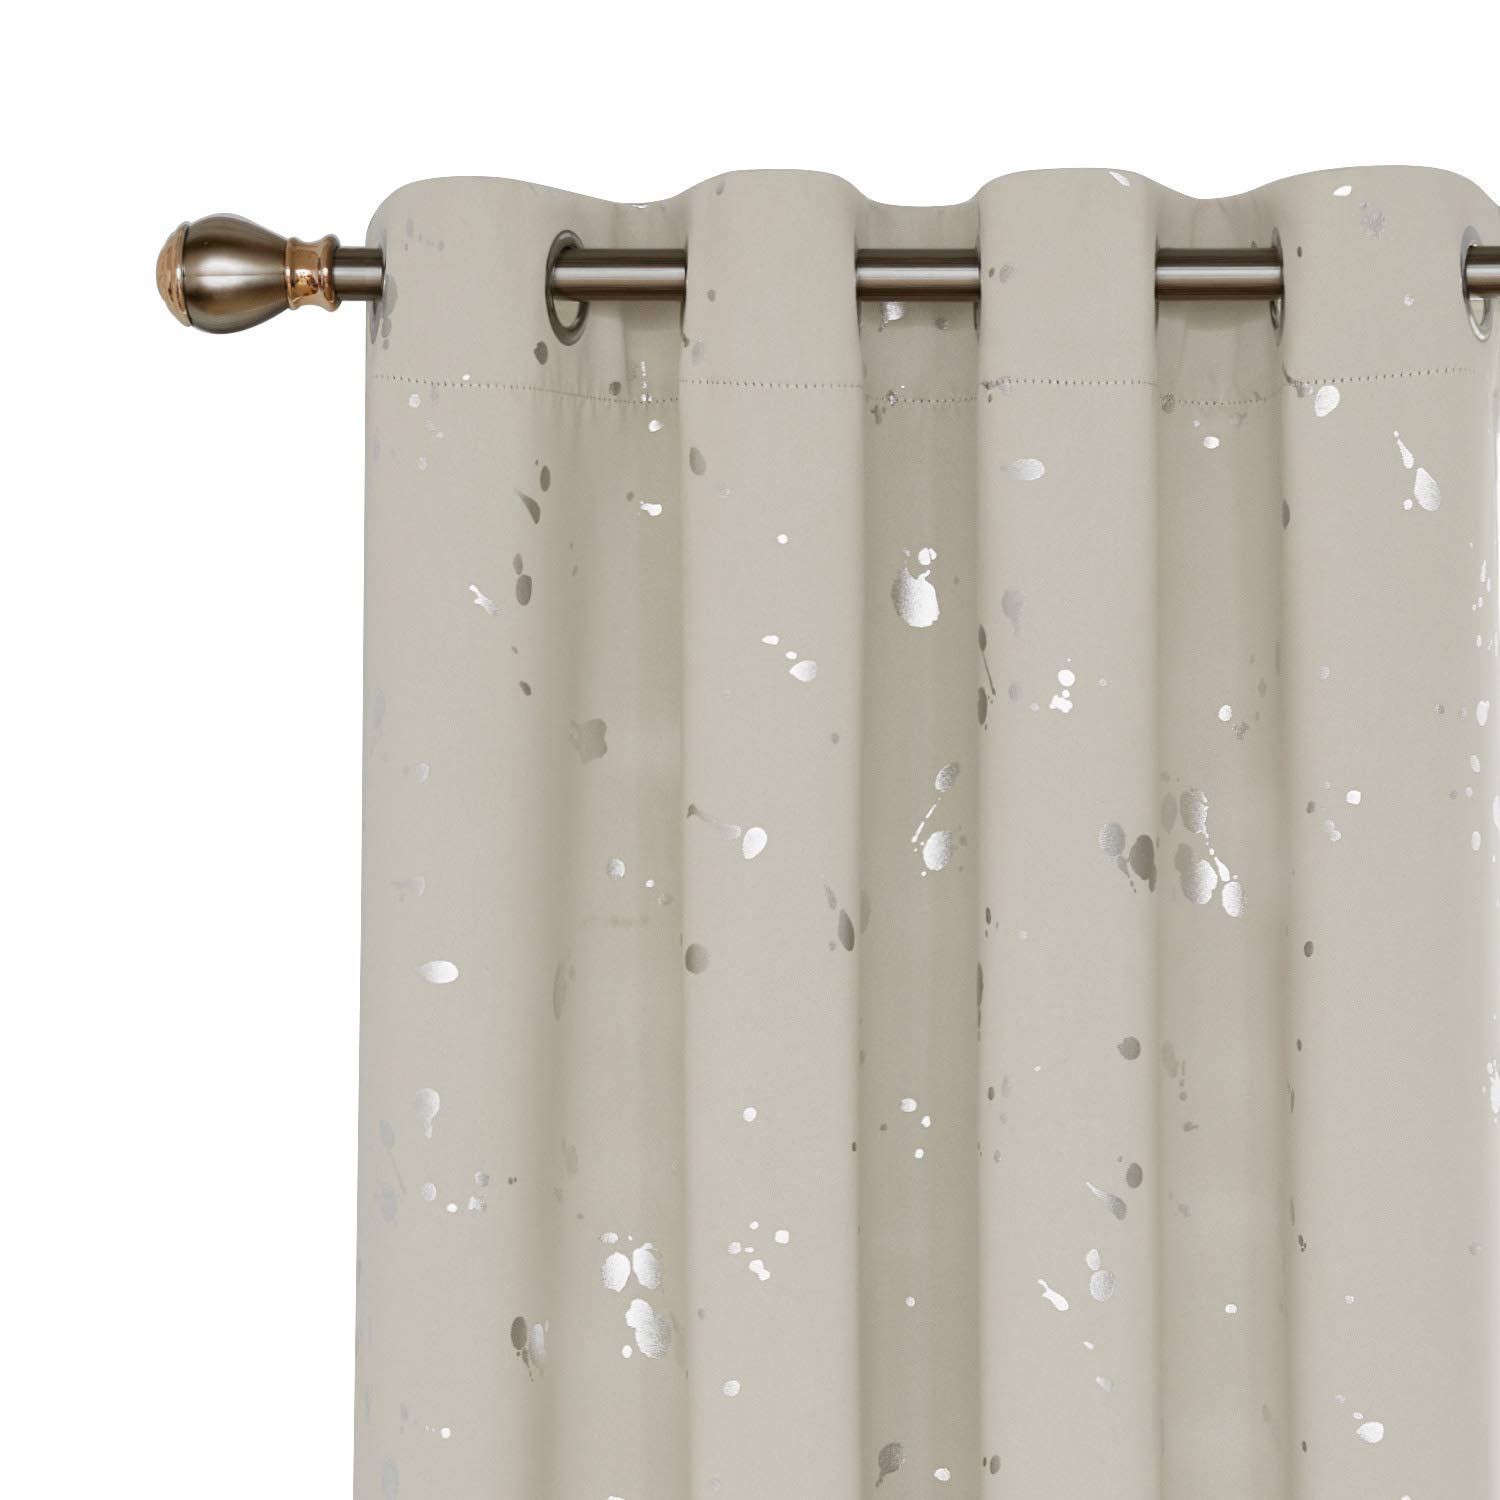 Deconovo Silver Dots Printed Blackout Curtains Grommet Curtains Room Darkening Cream Curtains for Kids Room Cream 52W x 95L 2 Panels